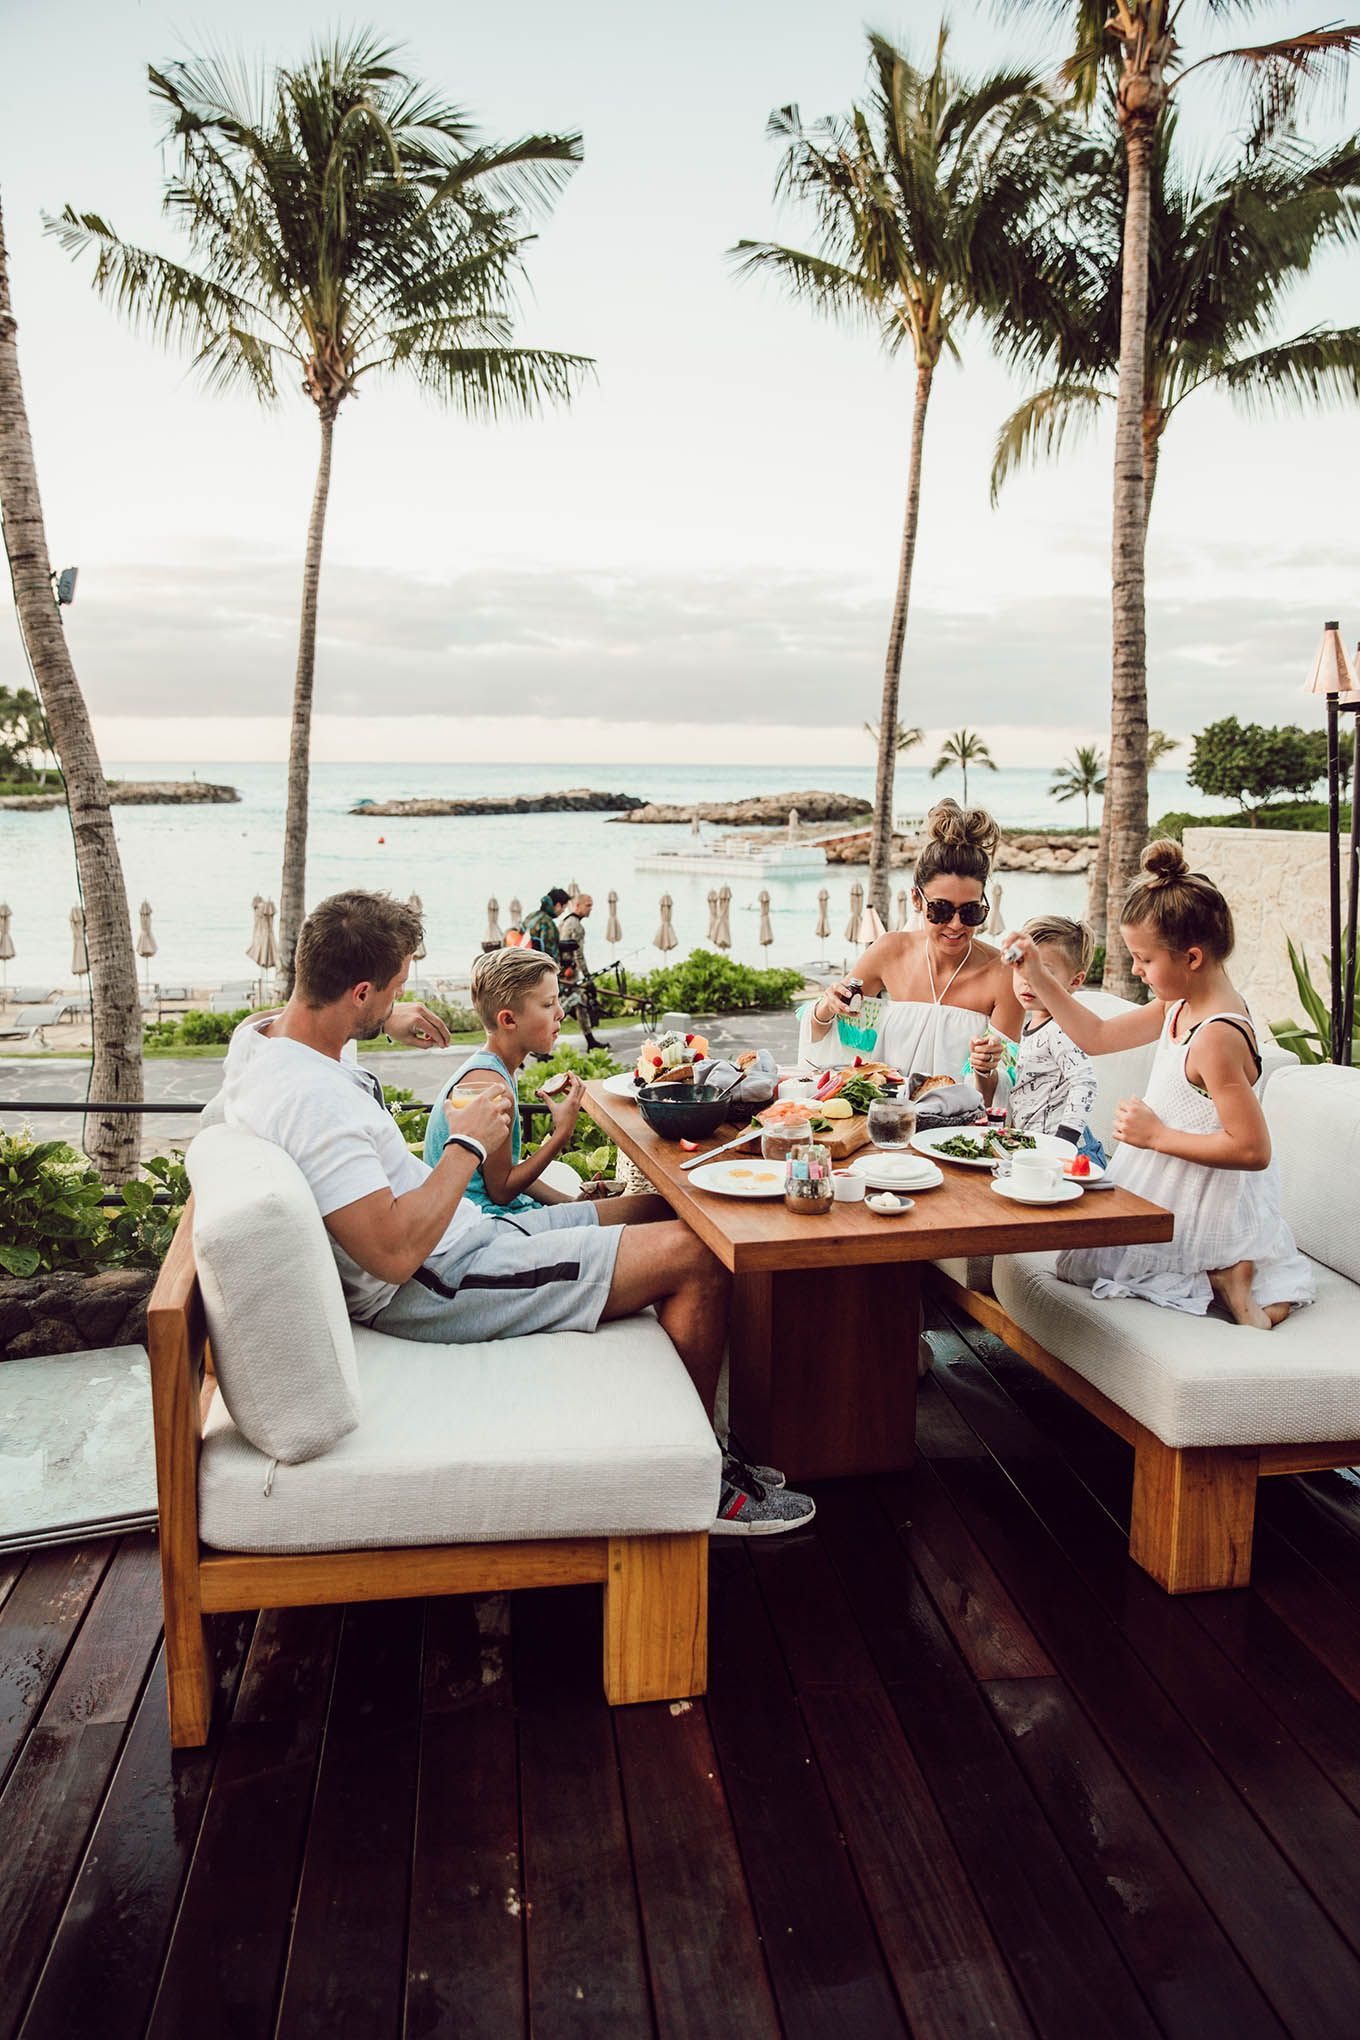 , Hawaii Travel Guide: 9 Things To Do At The Four Seasons Oahu | Hello Fashion, Family Blog 2020, Family Blog 2020